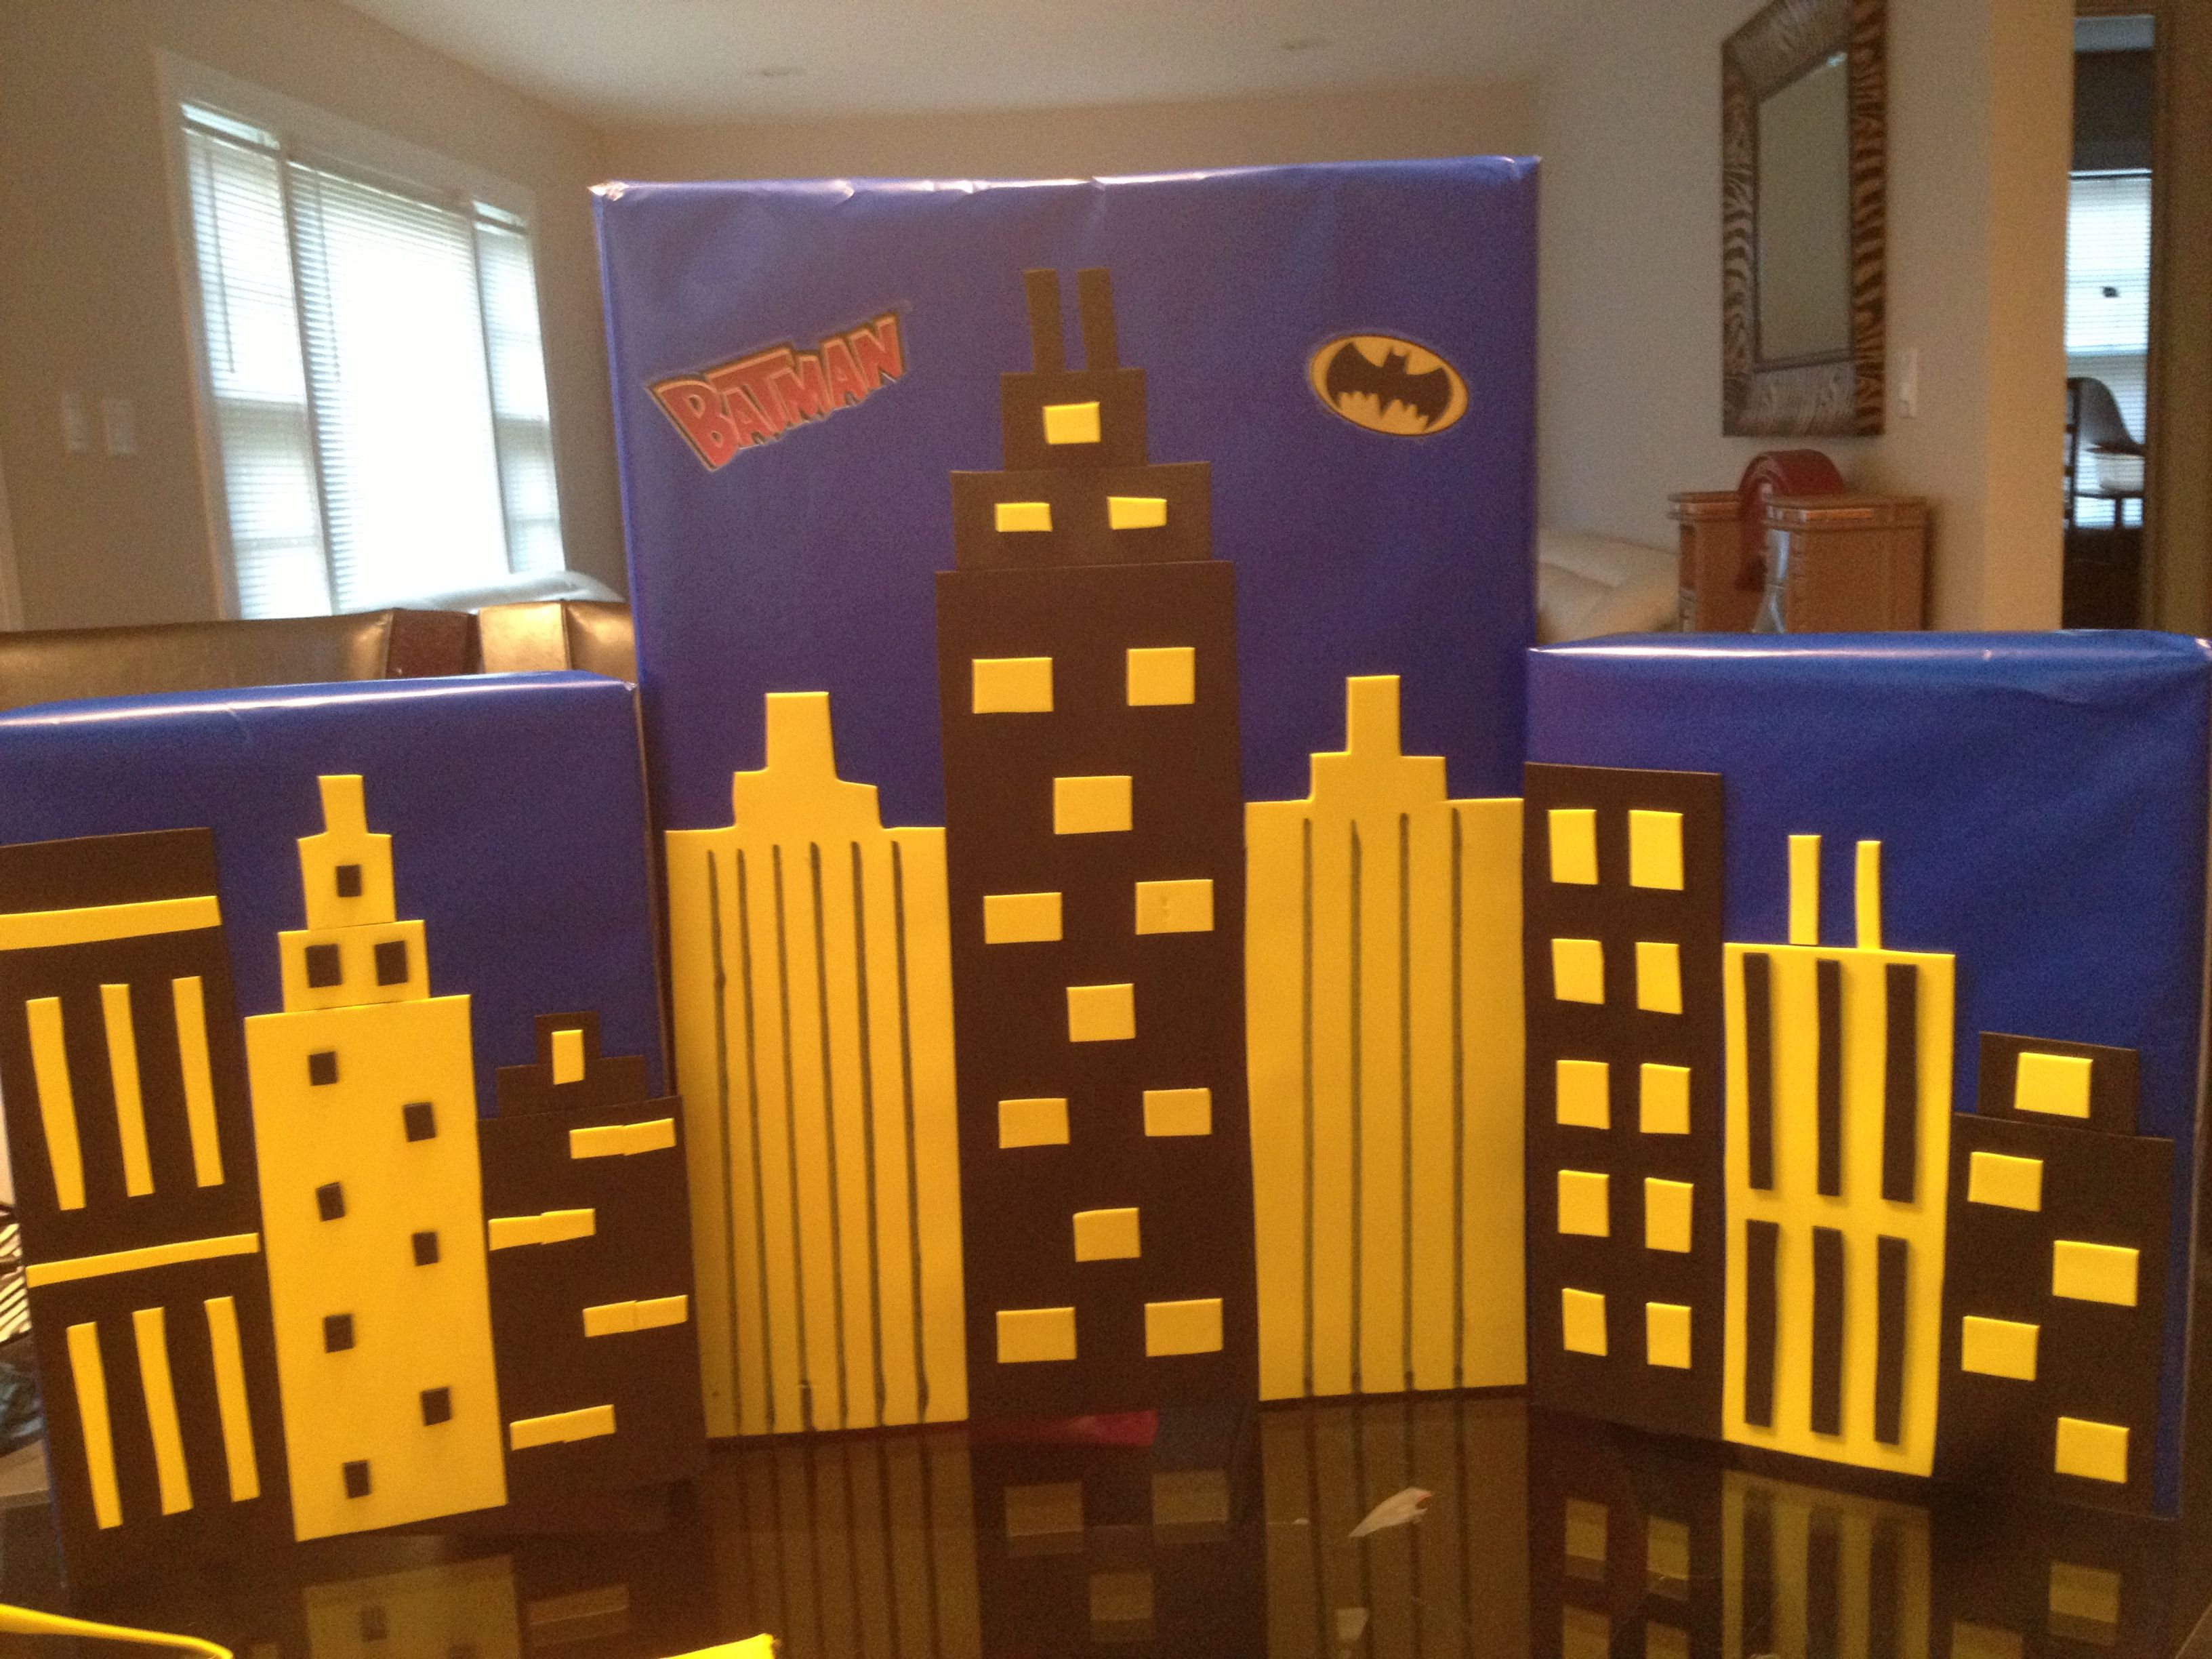 Backdrop superhero party printables batman background backdrop - Gothem City For Batman Party___this Would Be An Awesome Backdrop For Photos Where All The Kids Are Dressed In Their Favorite Superhero Costume